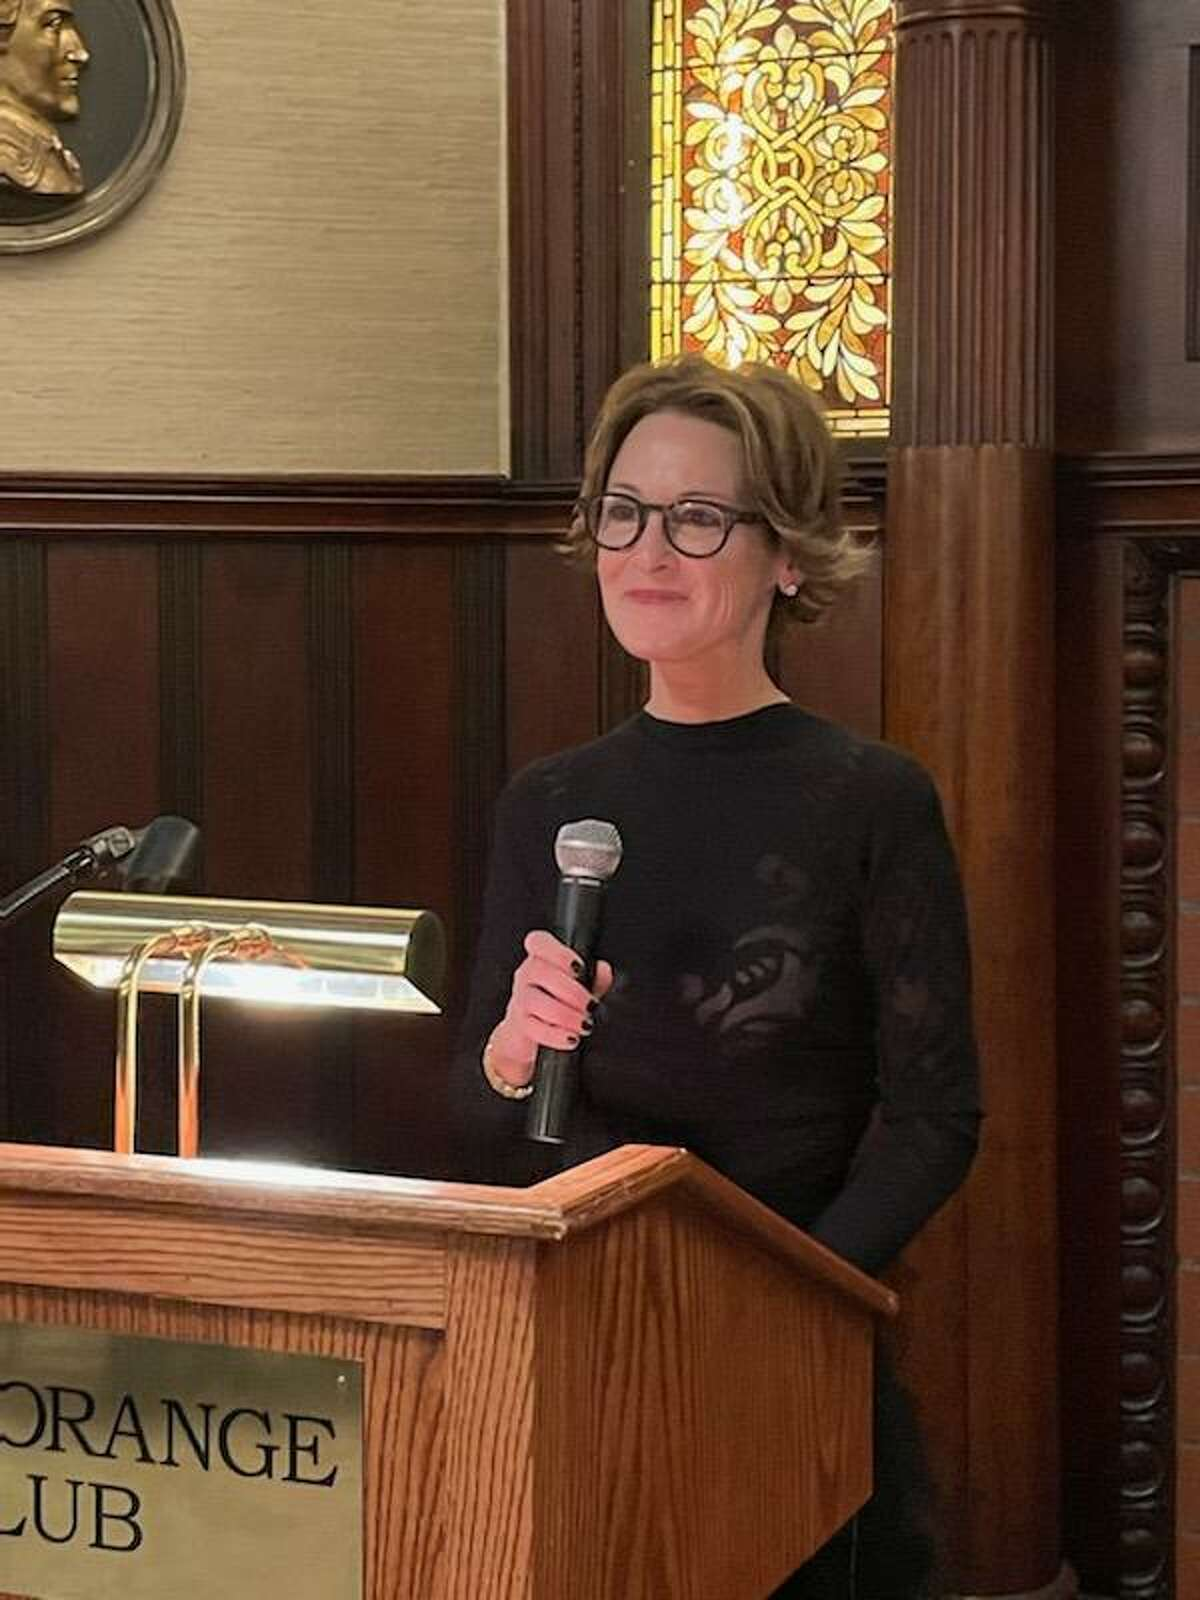 FILE. Shannon Older, 54, of Latham, was elected the first woman president of the Fort Orange Club on Nov. 5, 2020, and she was honored at that evening's annual meeting and dinner. (Provided)